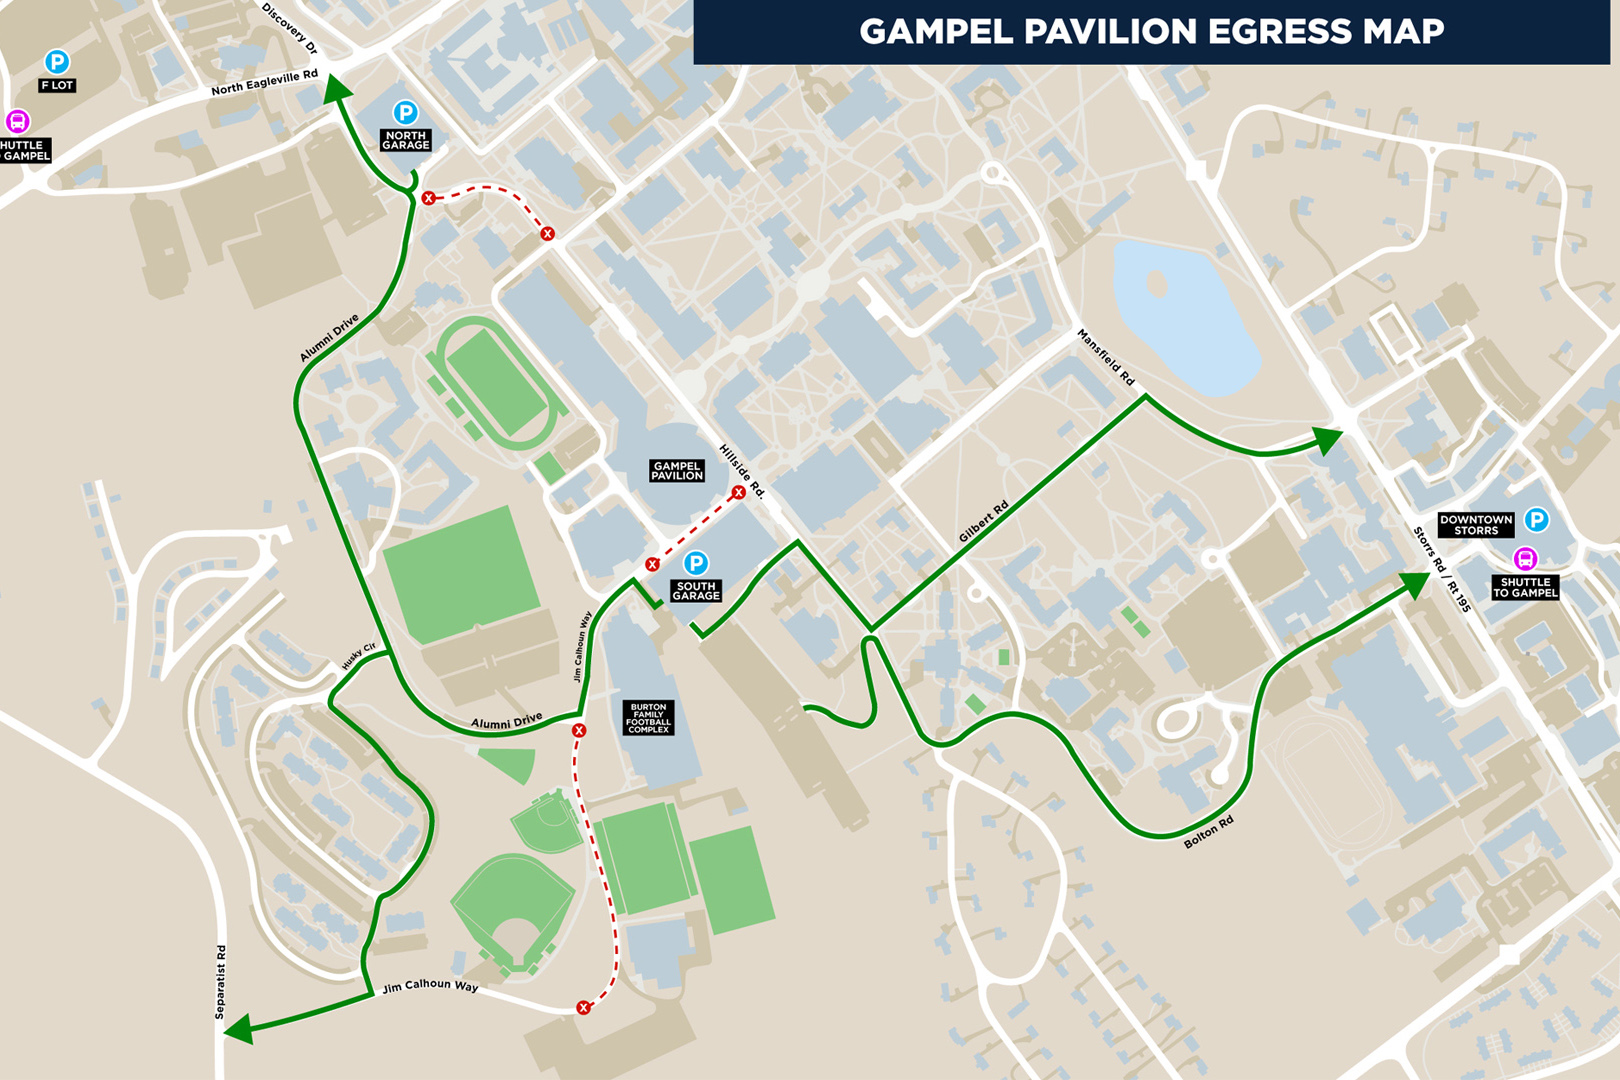 The changes have been made to improve the traffic flow and mitigate the effects related to construction on Jim Calhoun Way. (Athletic Communications Map)